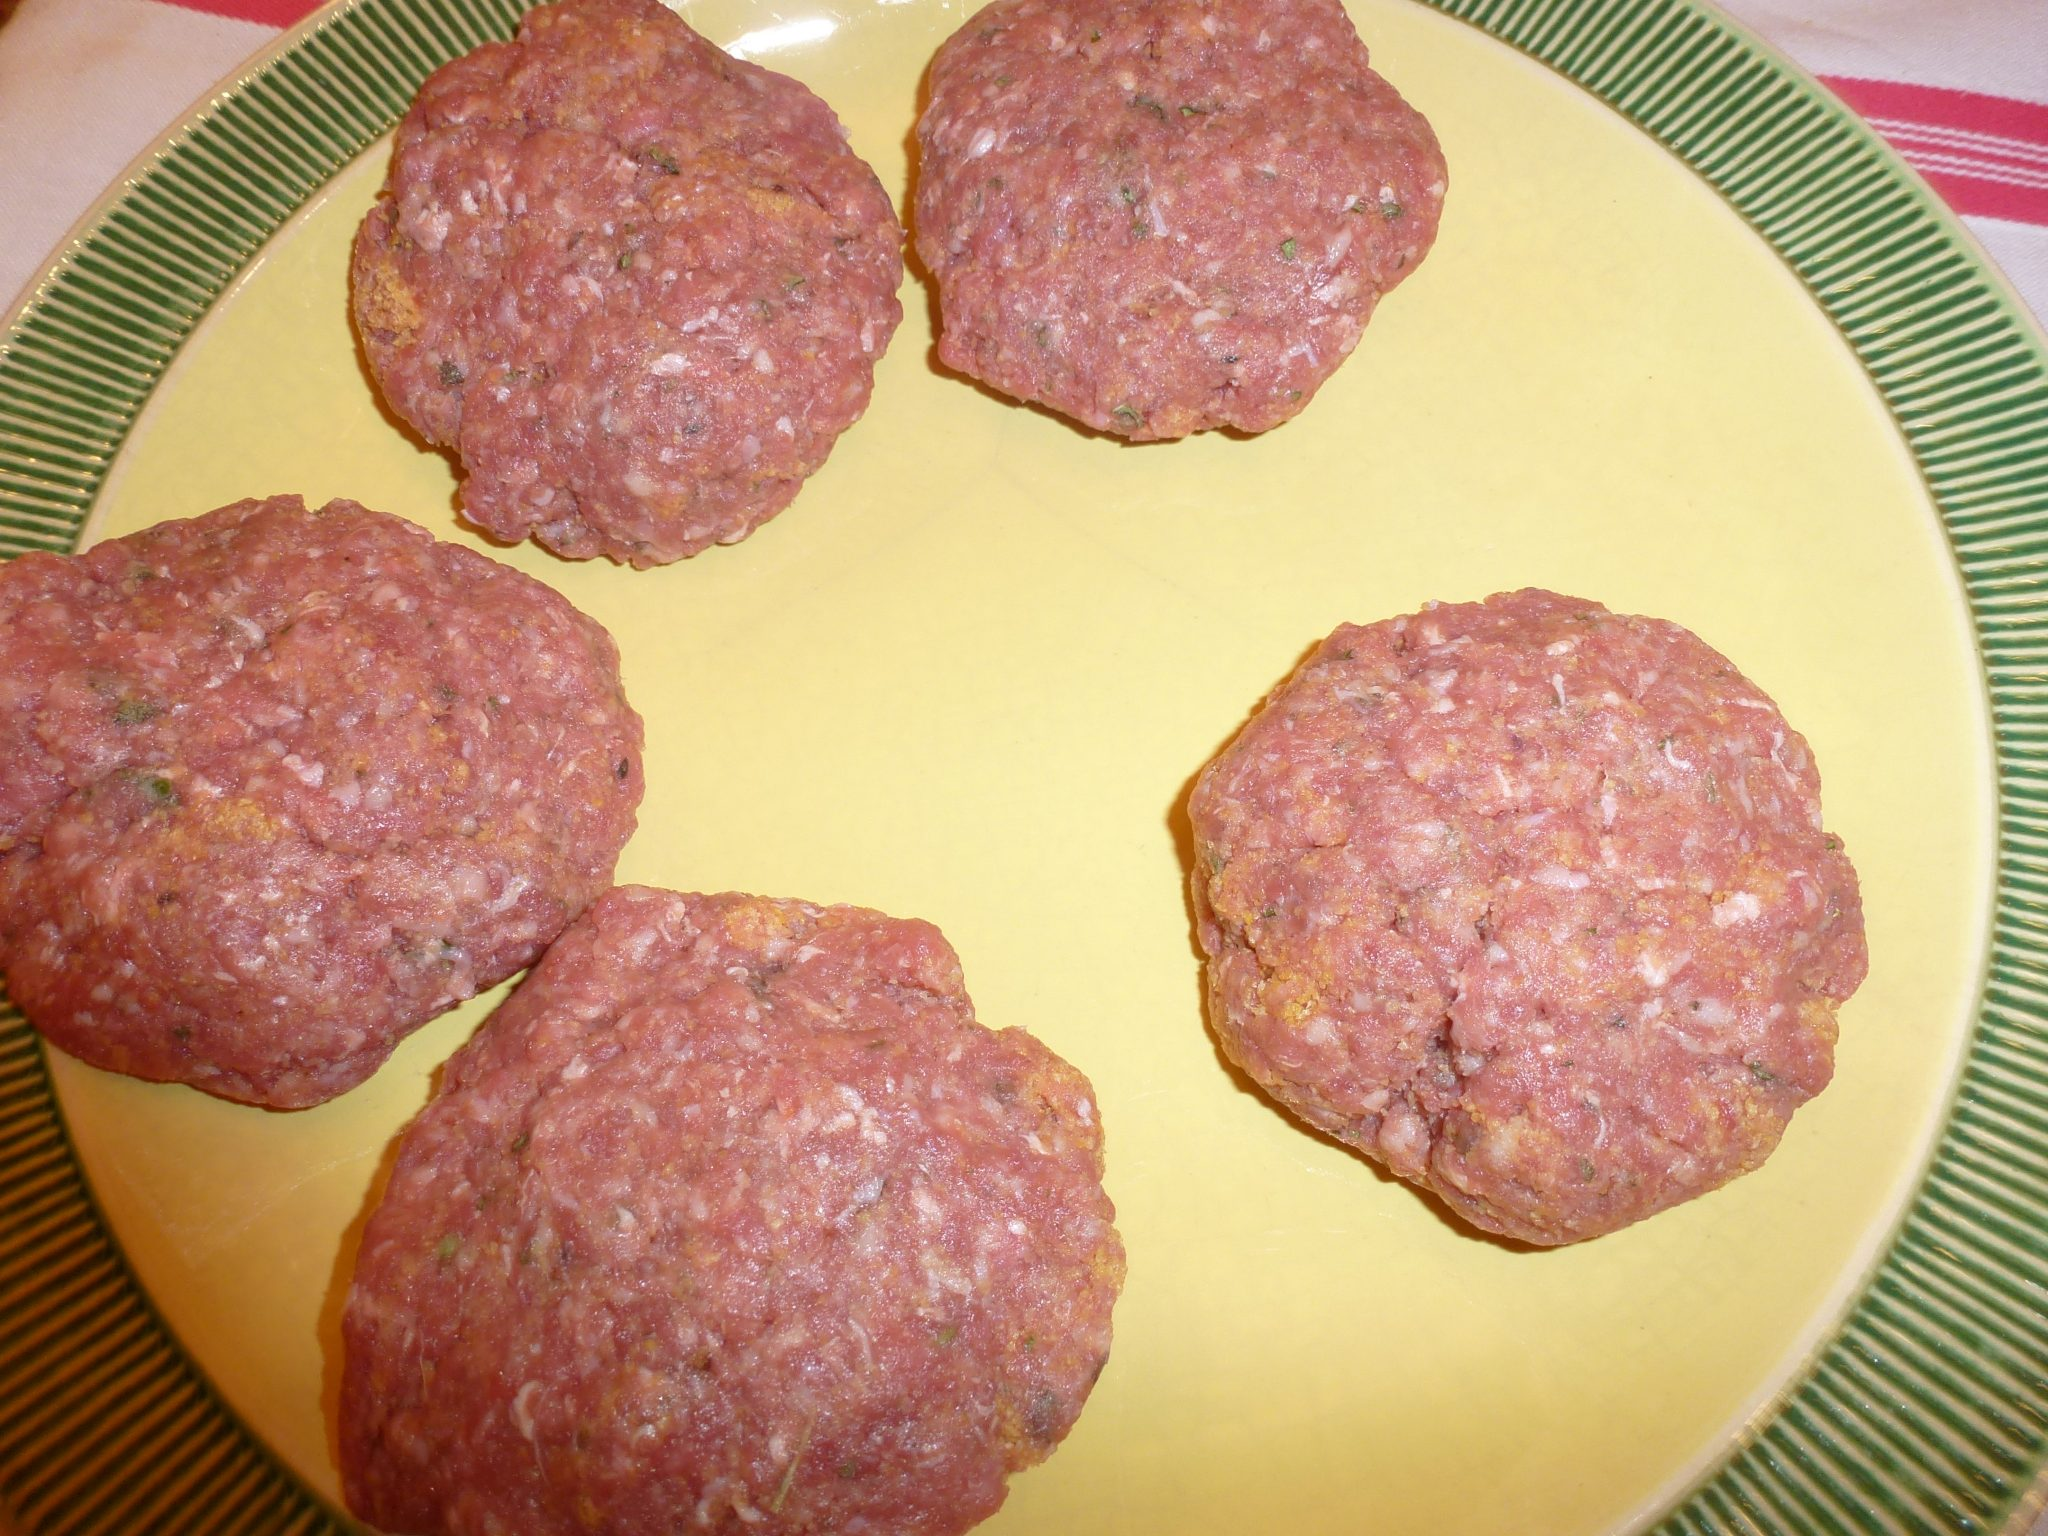 Formed burger patties